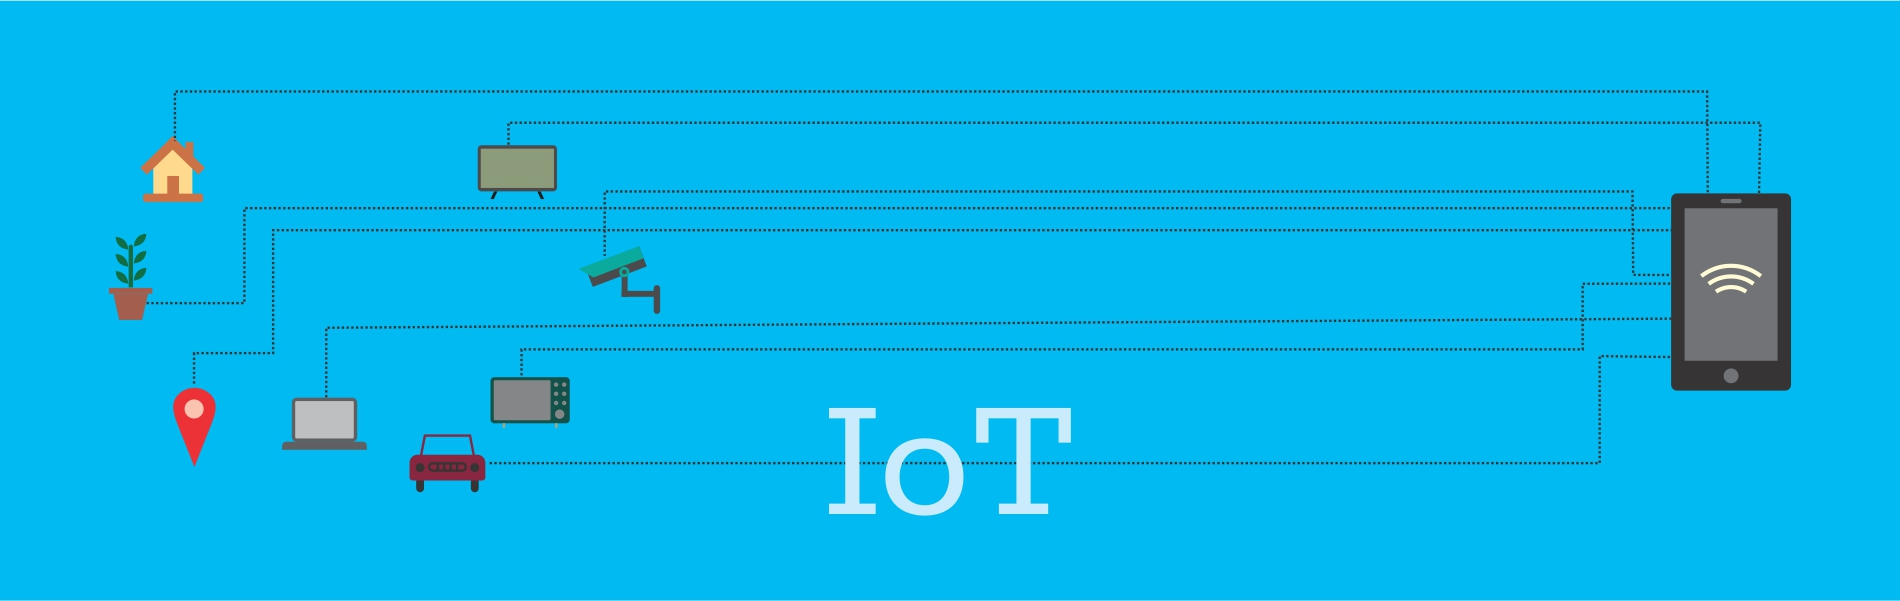 blog-images-iot